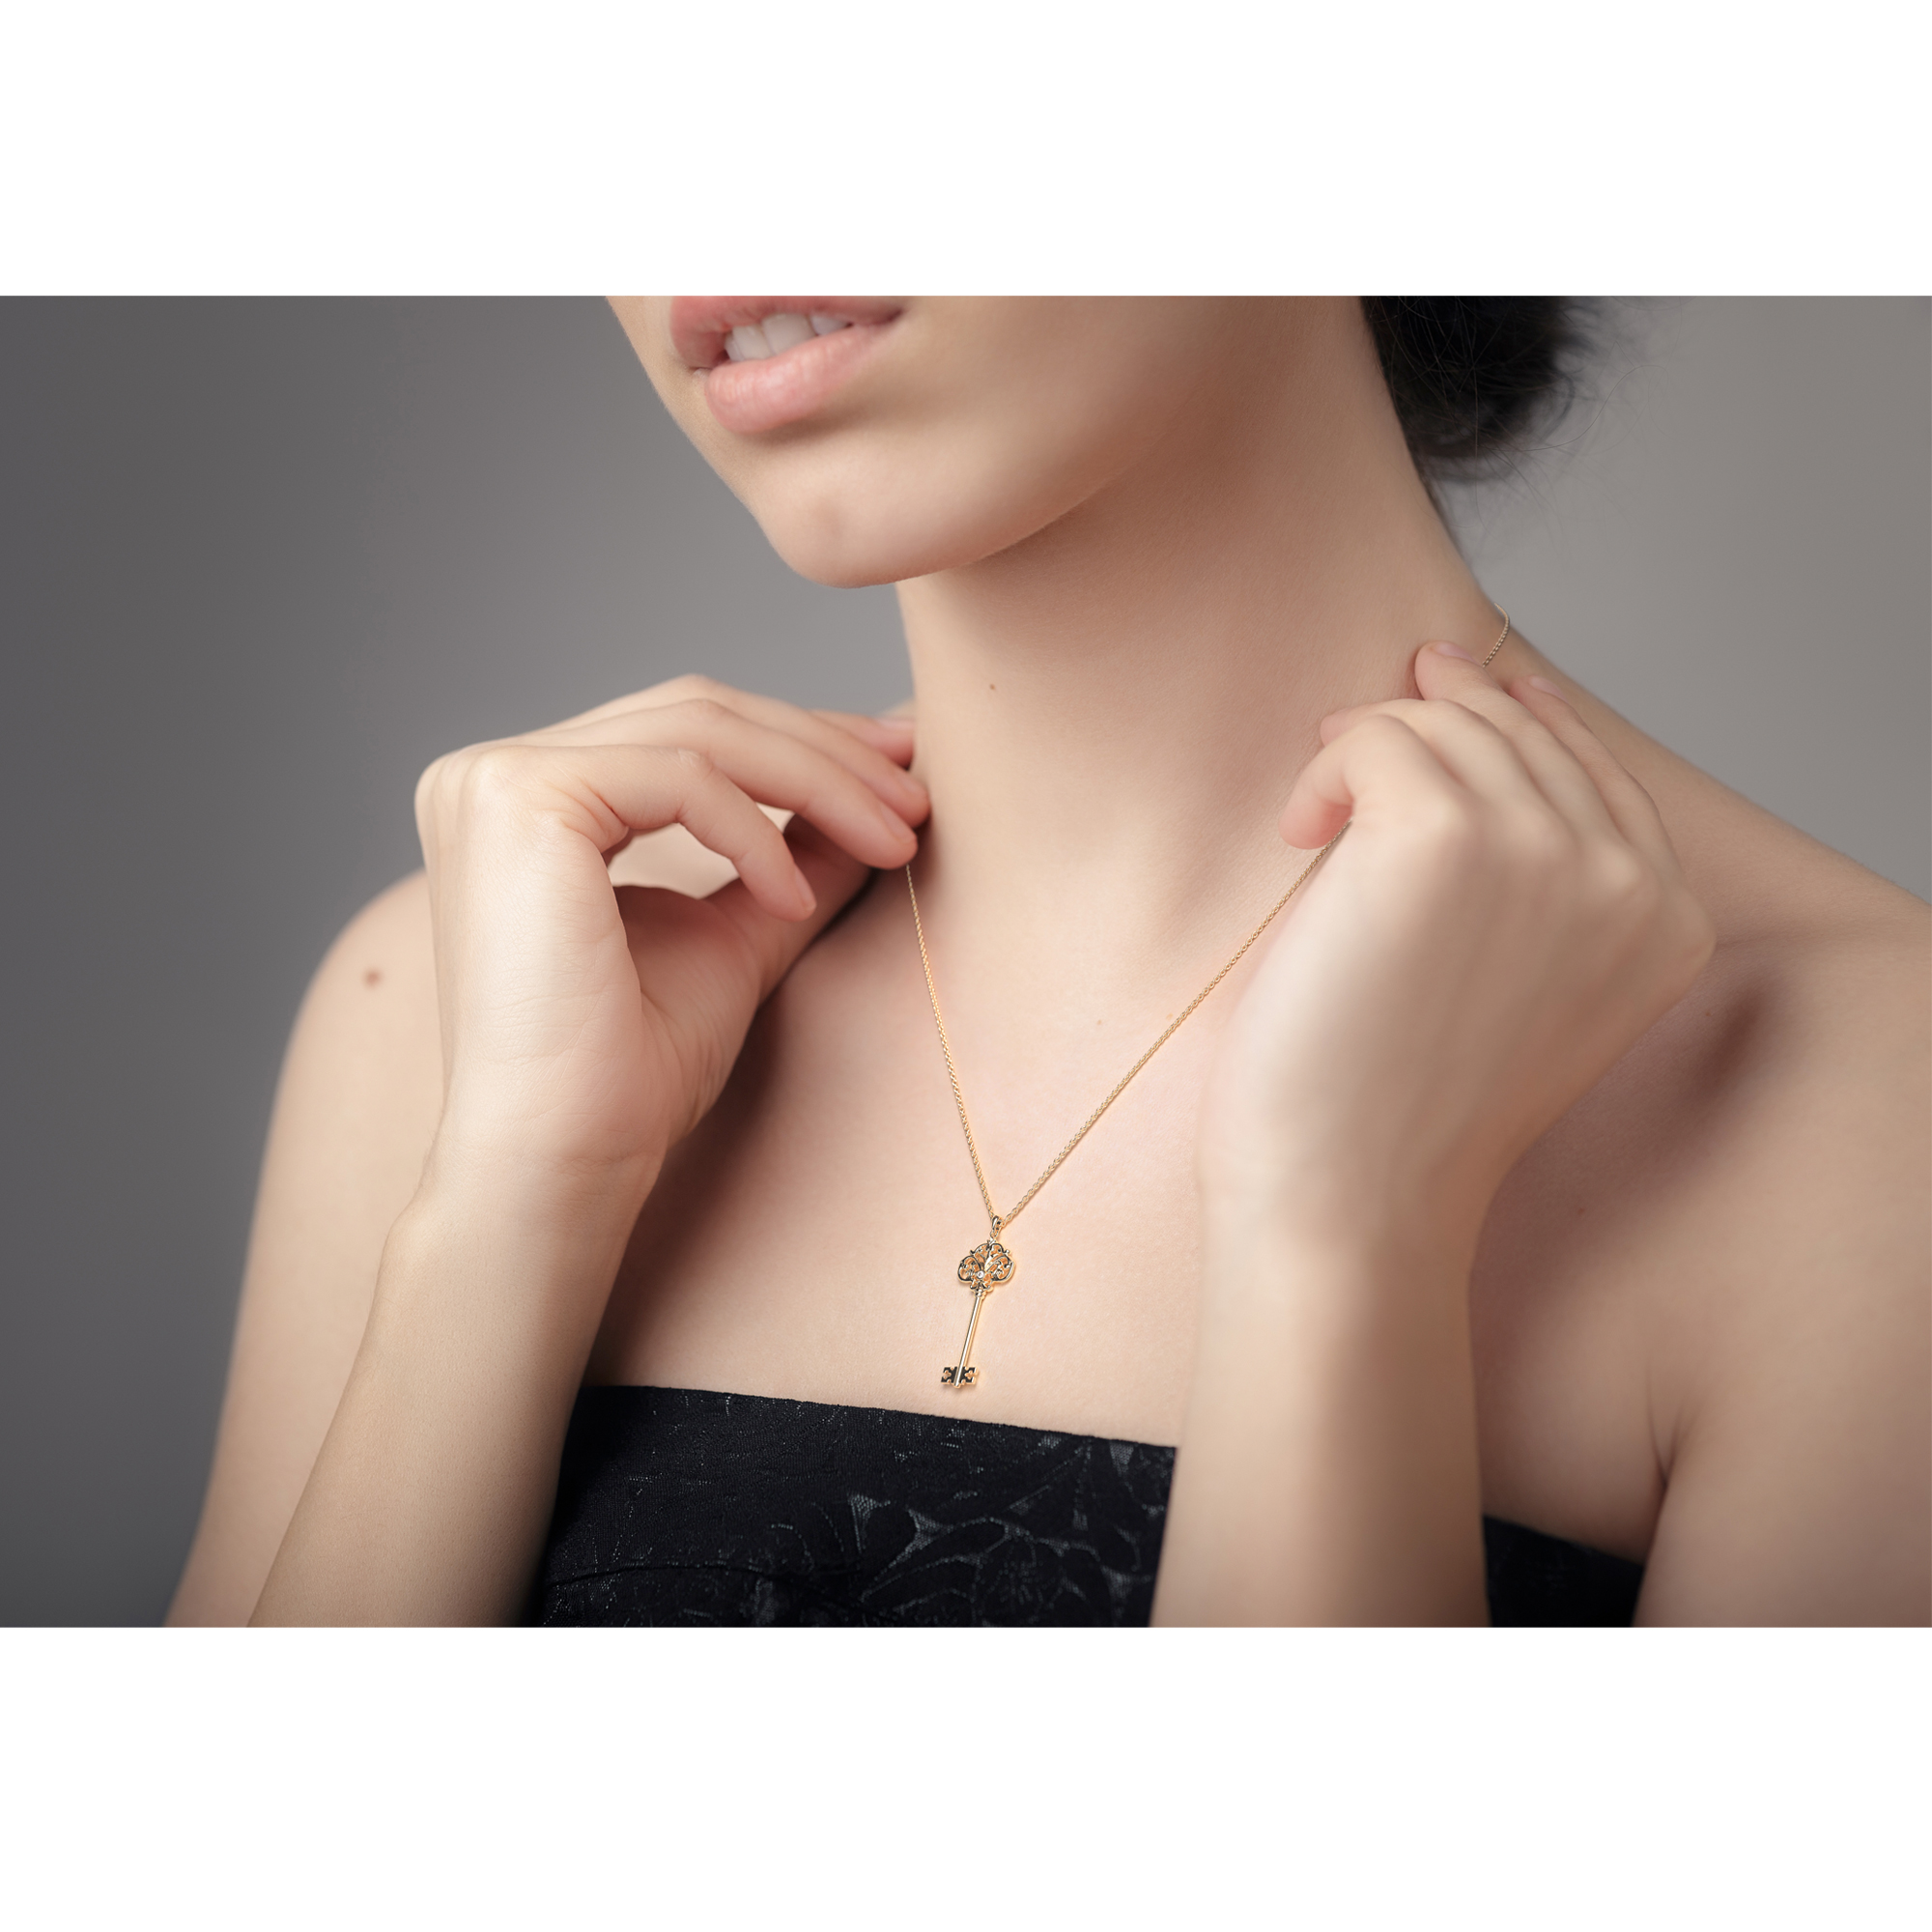 Necklaces For Women Vintage Gold Pendant Dainty Key Pendant Fine Jewelry